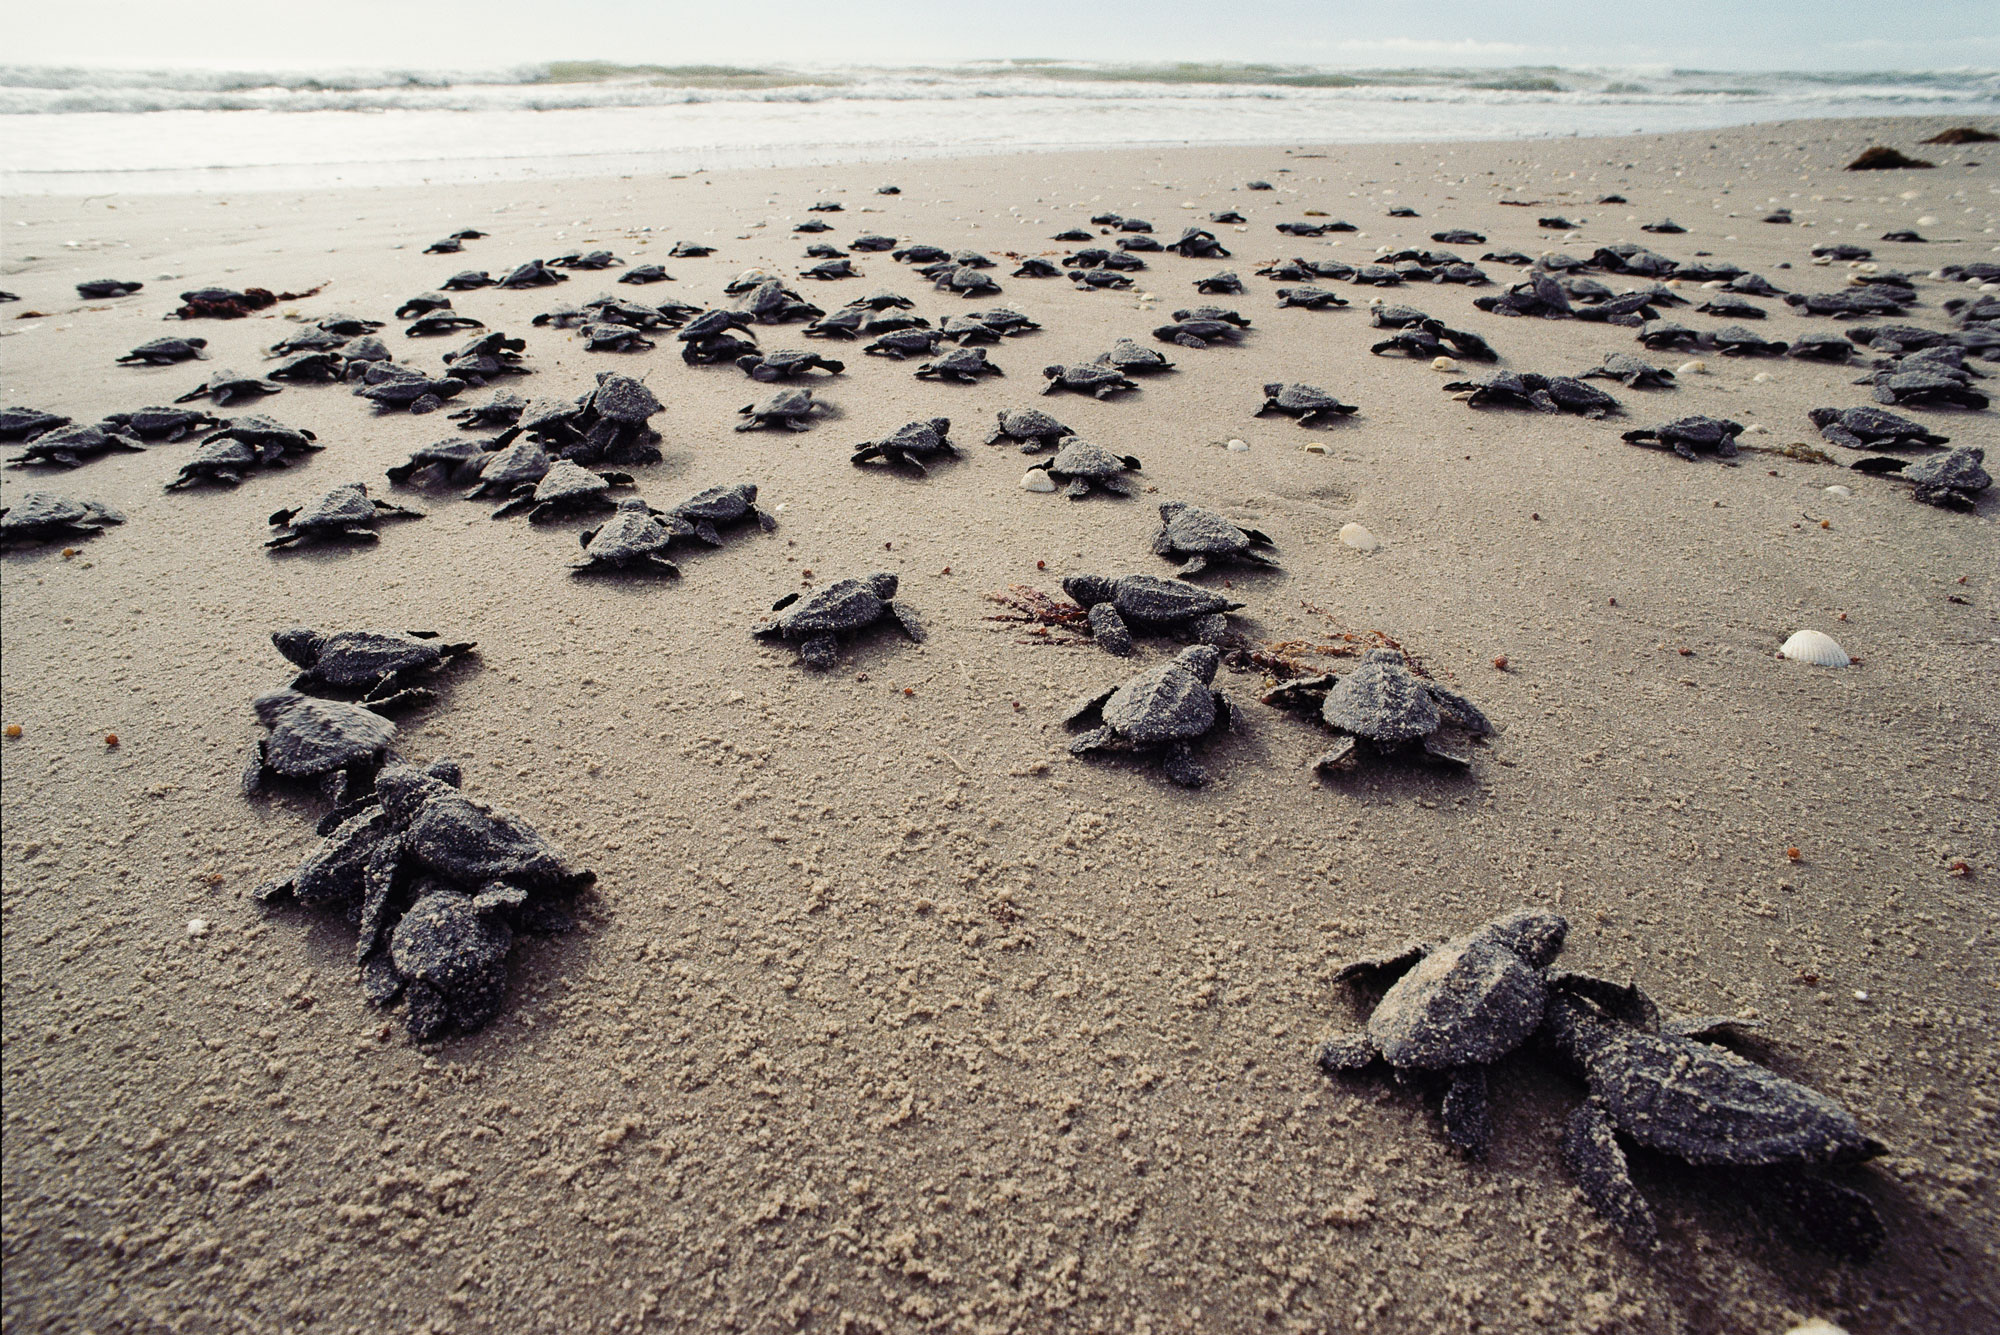 Many sea turtles just emerged from the nest on their way to the sea.